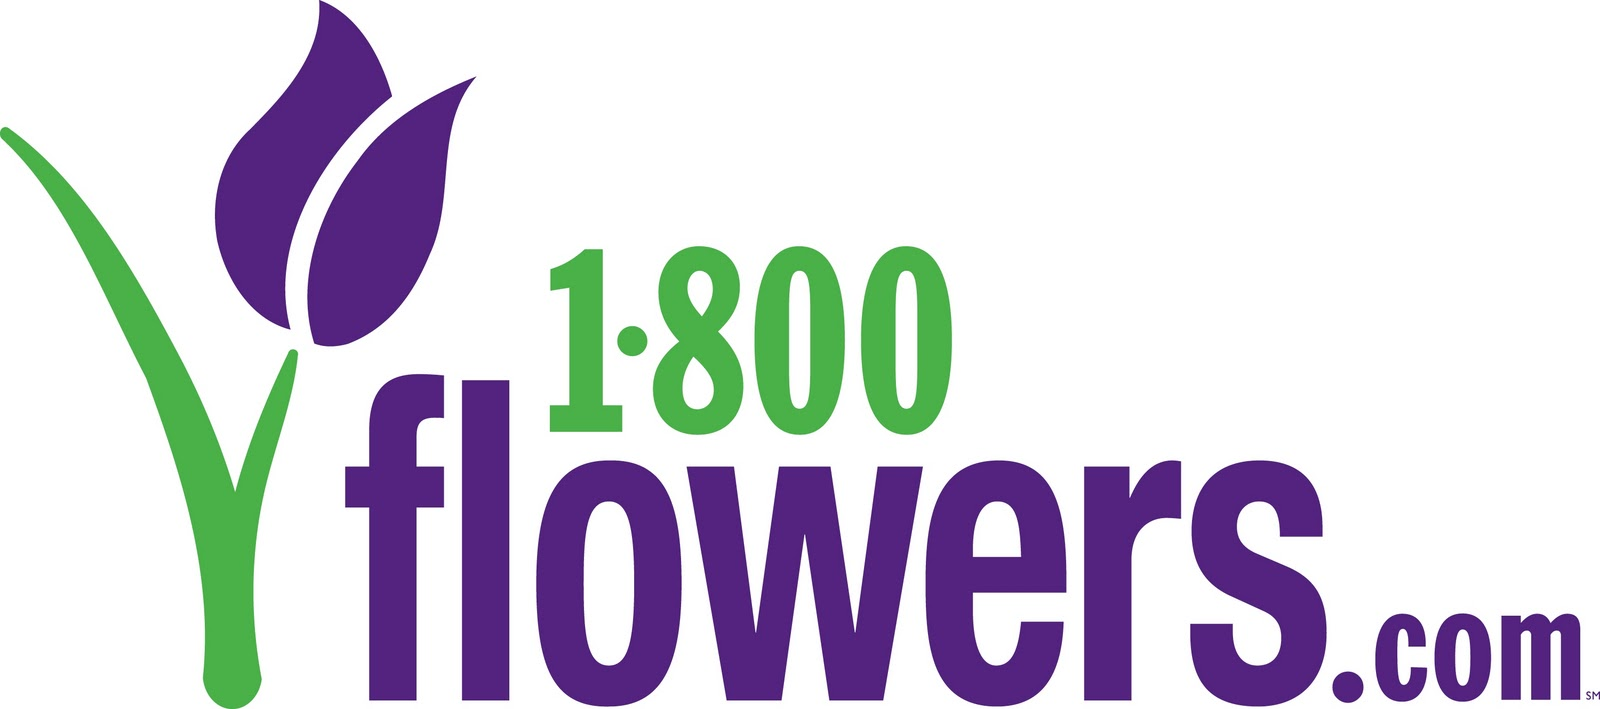 - 1-800 Flowers.com1-800-Flowers is giving listeners an exclusive 24 for 24 offer. 24 Multicolored Roses for $24. That's ONLY a dollar per rose! Simply pick your delivery date and let 1-800-Flowers handle the rest. Go to 1800flowers.com/offtopicClick Here!